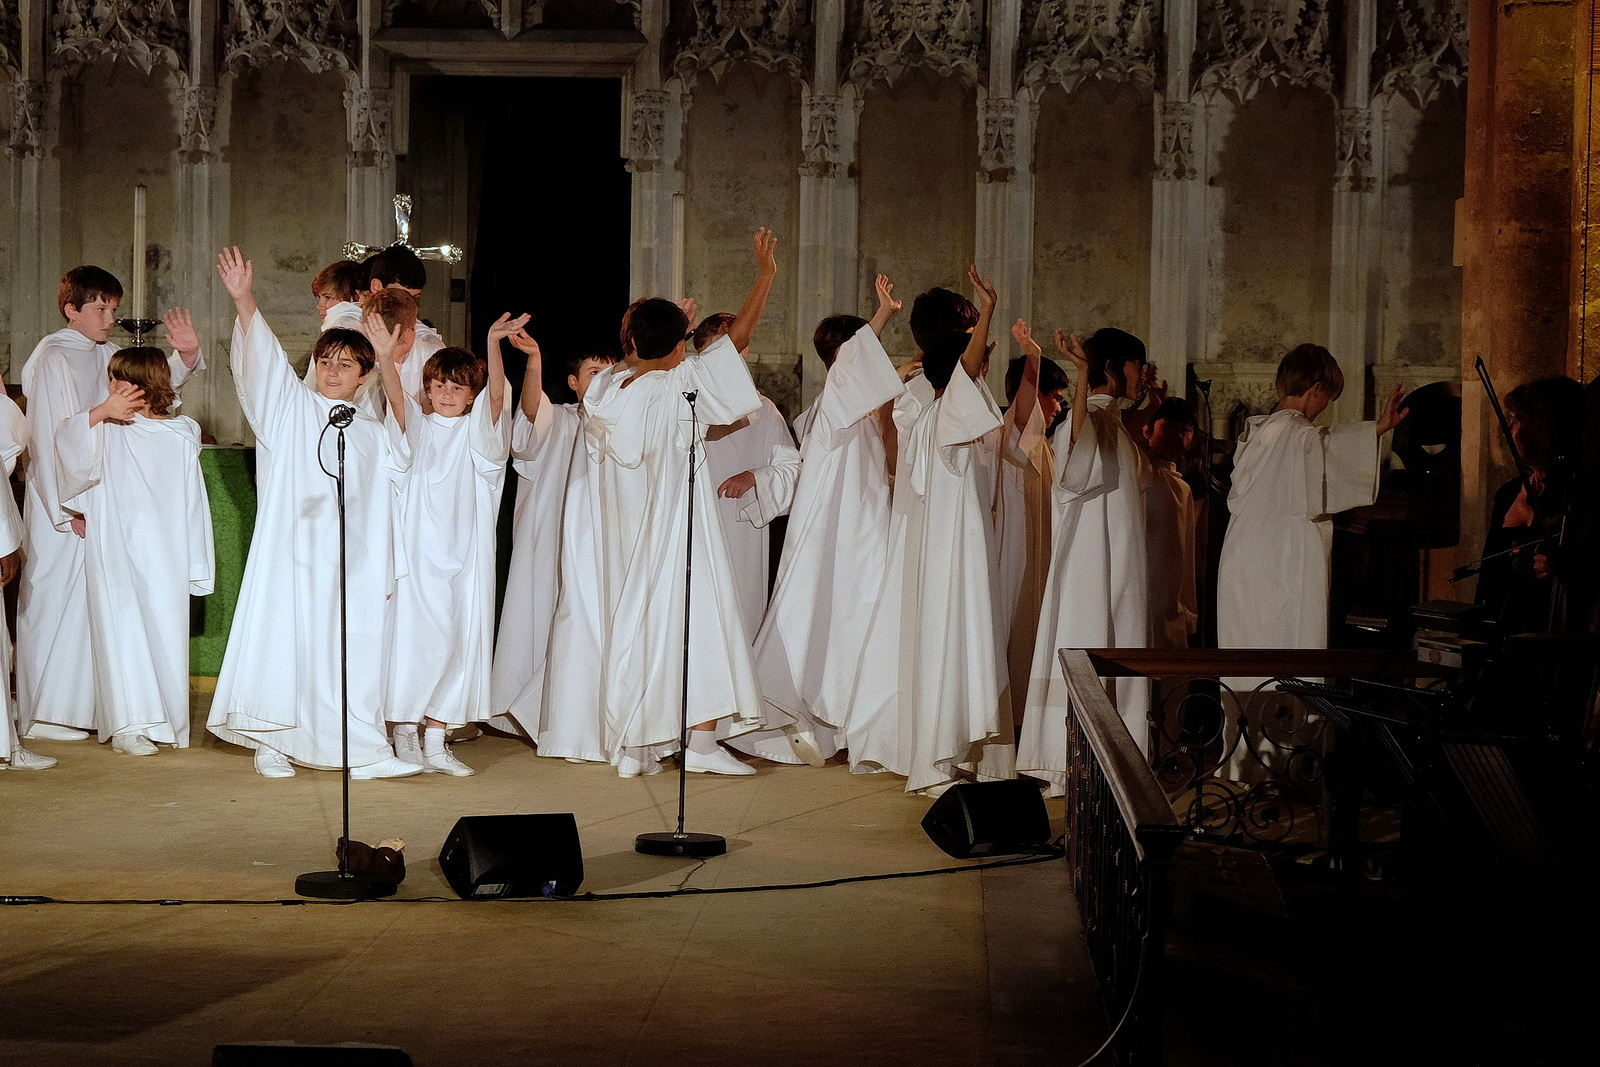 libera_2015-07_christchurch_CLOO9012_w_1600.JPG